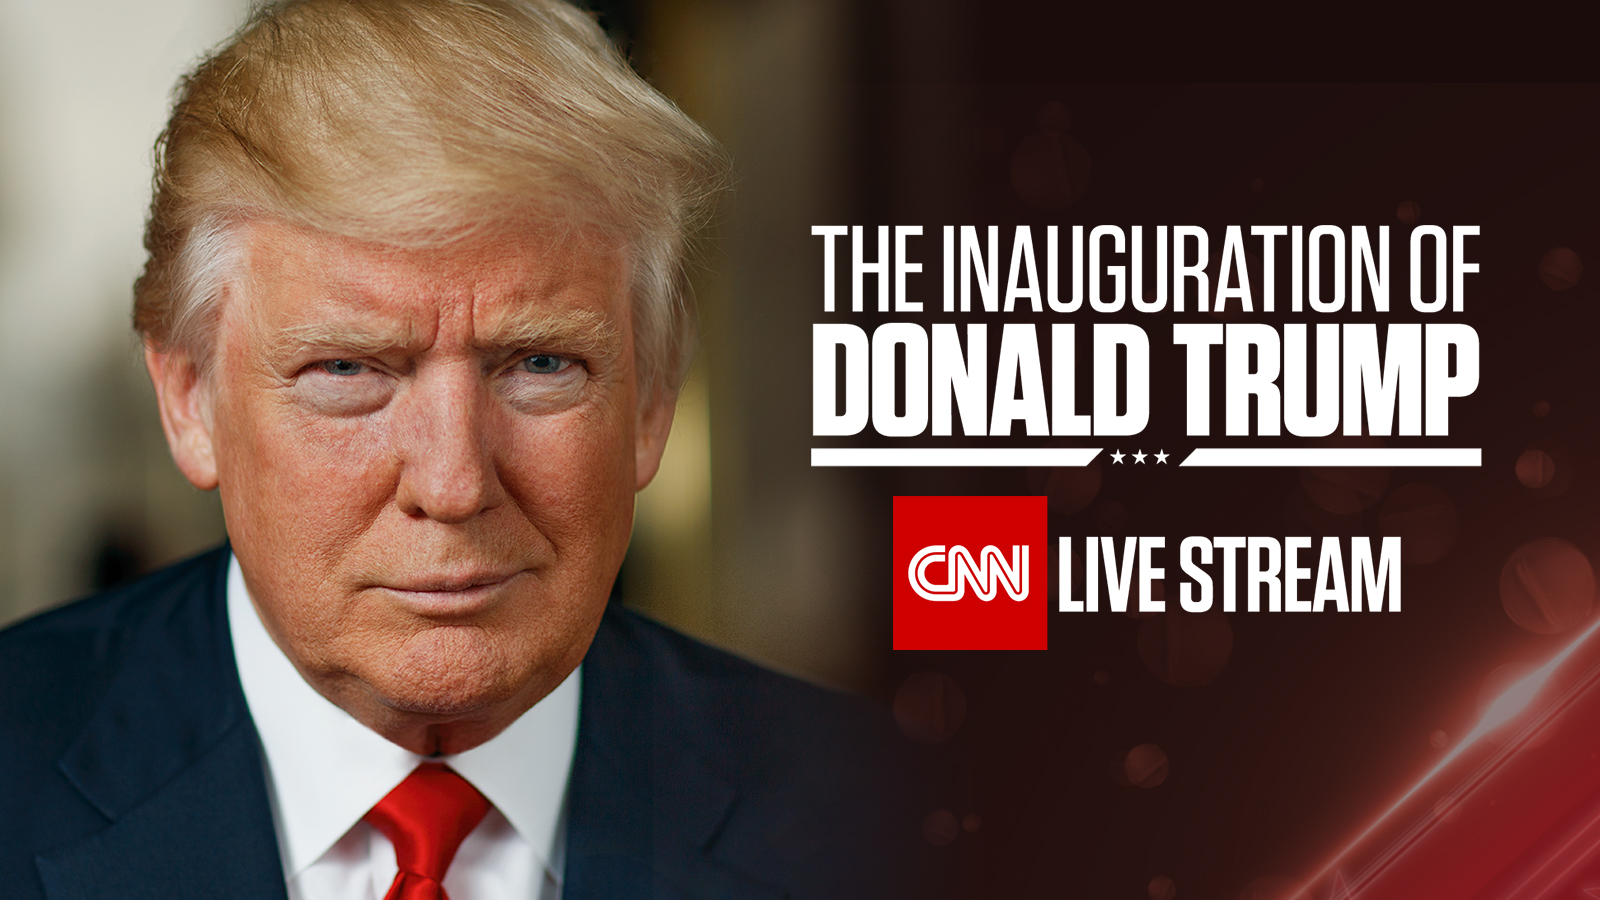 Cnn Live Streaming Inauguration Day Coverage